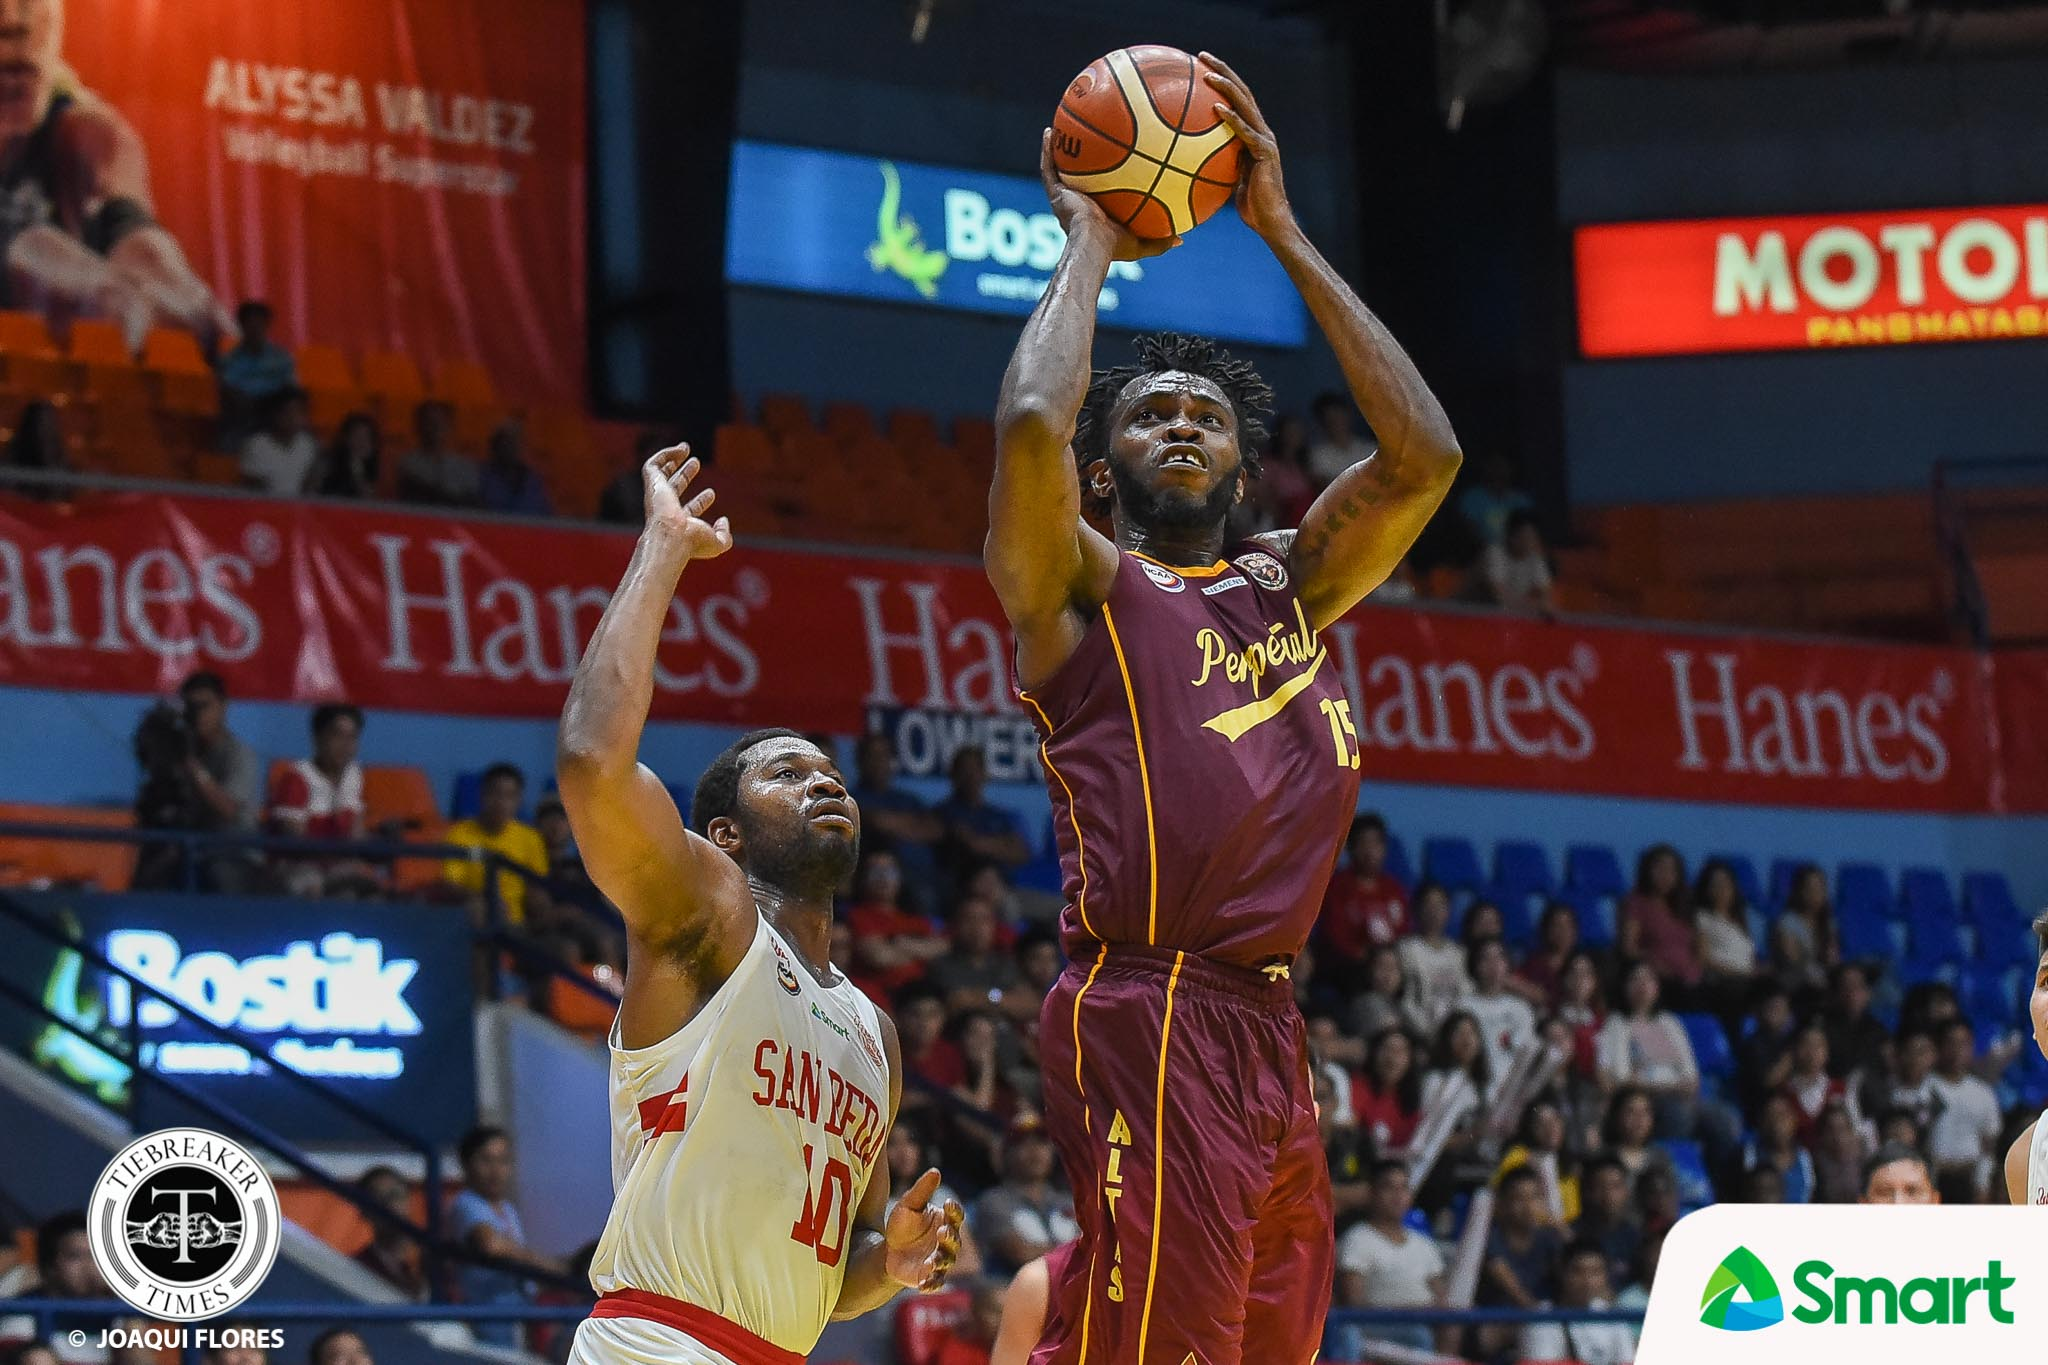 Tiebreaker Times Scottie Thompson glad Prince Eze will bring MVP plum back to Perpetual Basketball NCAA News UPHSD  Scottie Thompson Prince Eze Perpetual Seniors Basketball NCAA Season 94 Seniors Basketball NCAA Season 94